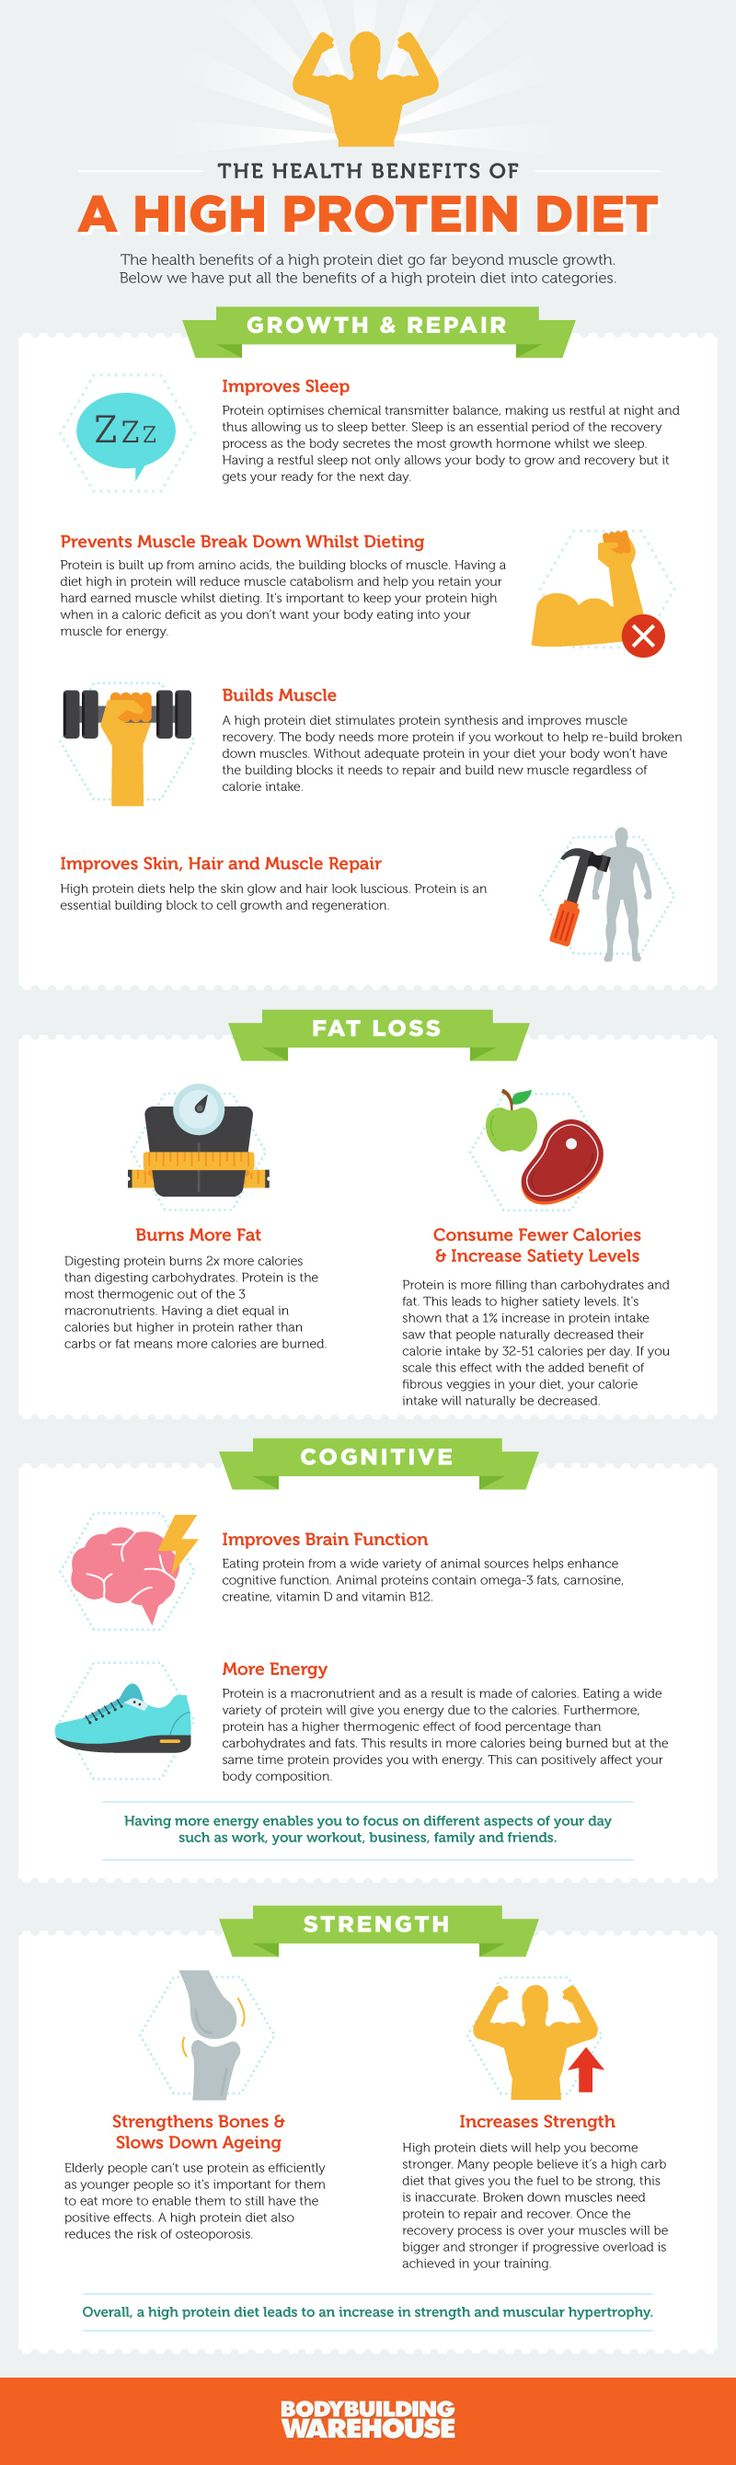 Why Your Body Could Use a Healthy Protein Boost {Infographic}